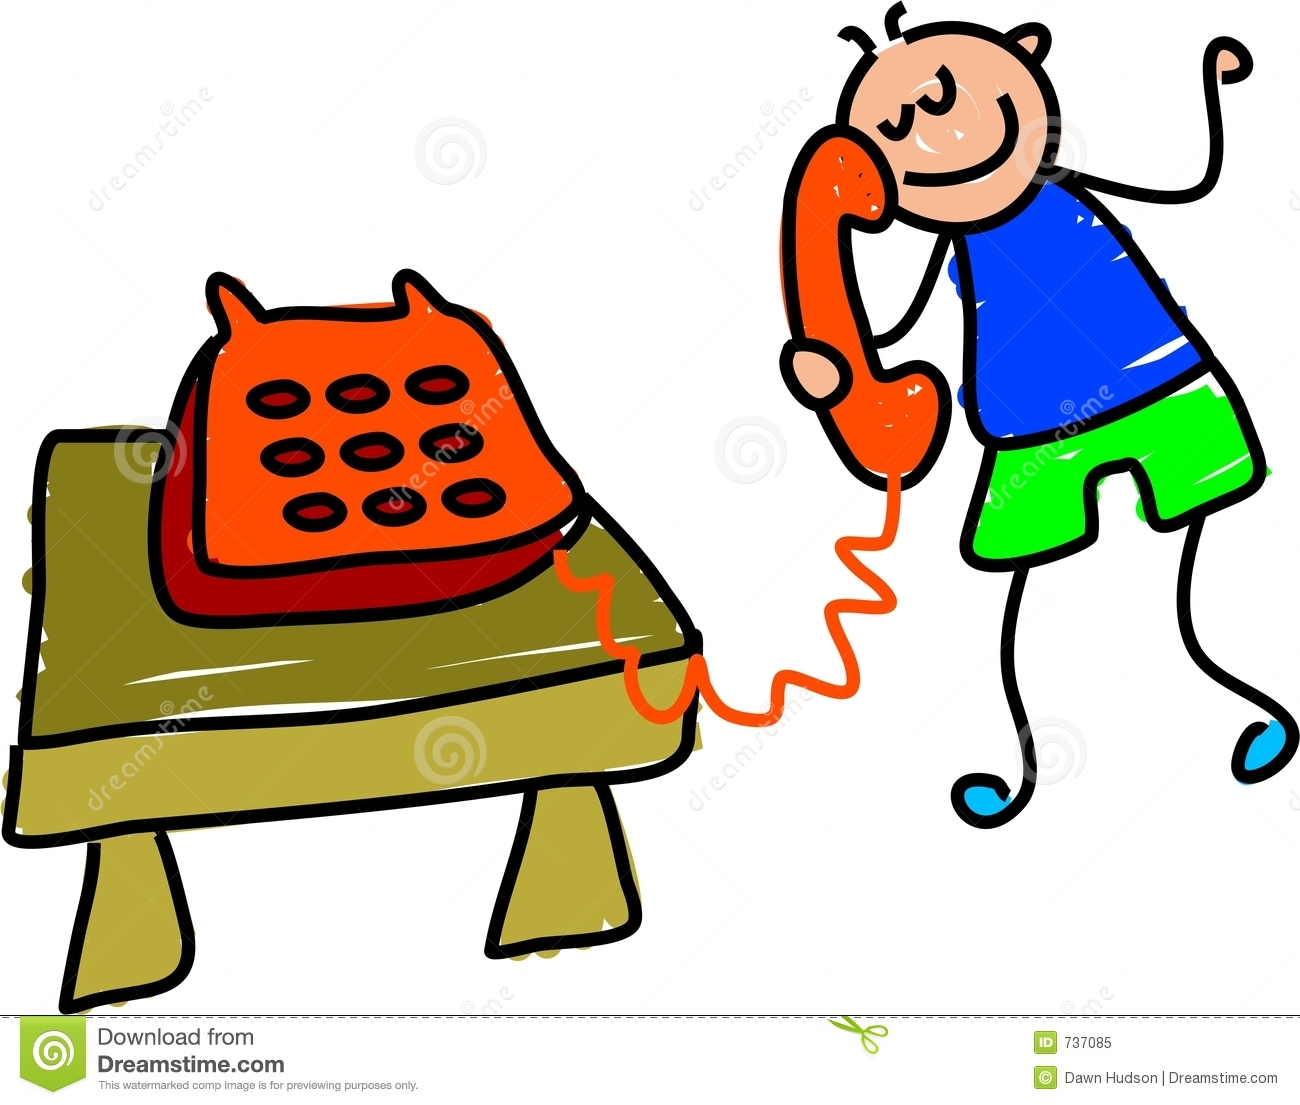 Telephone clipart telephonic conversation.  talking on the